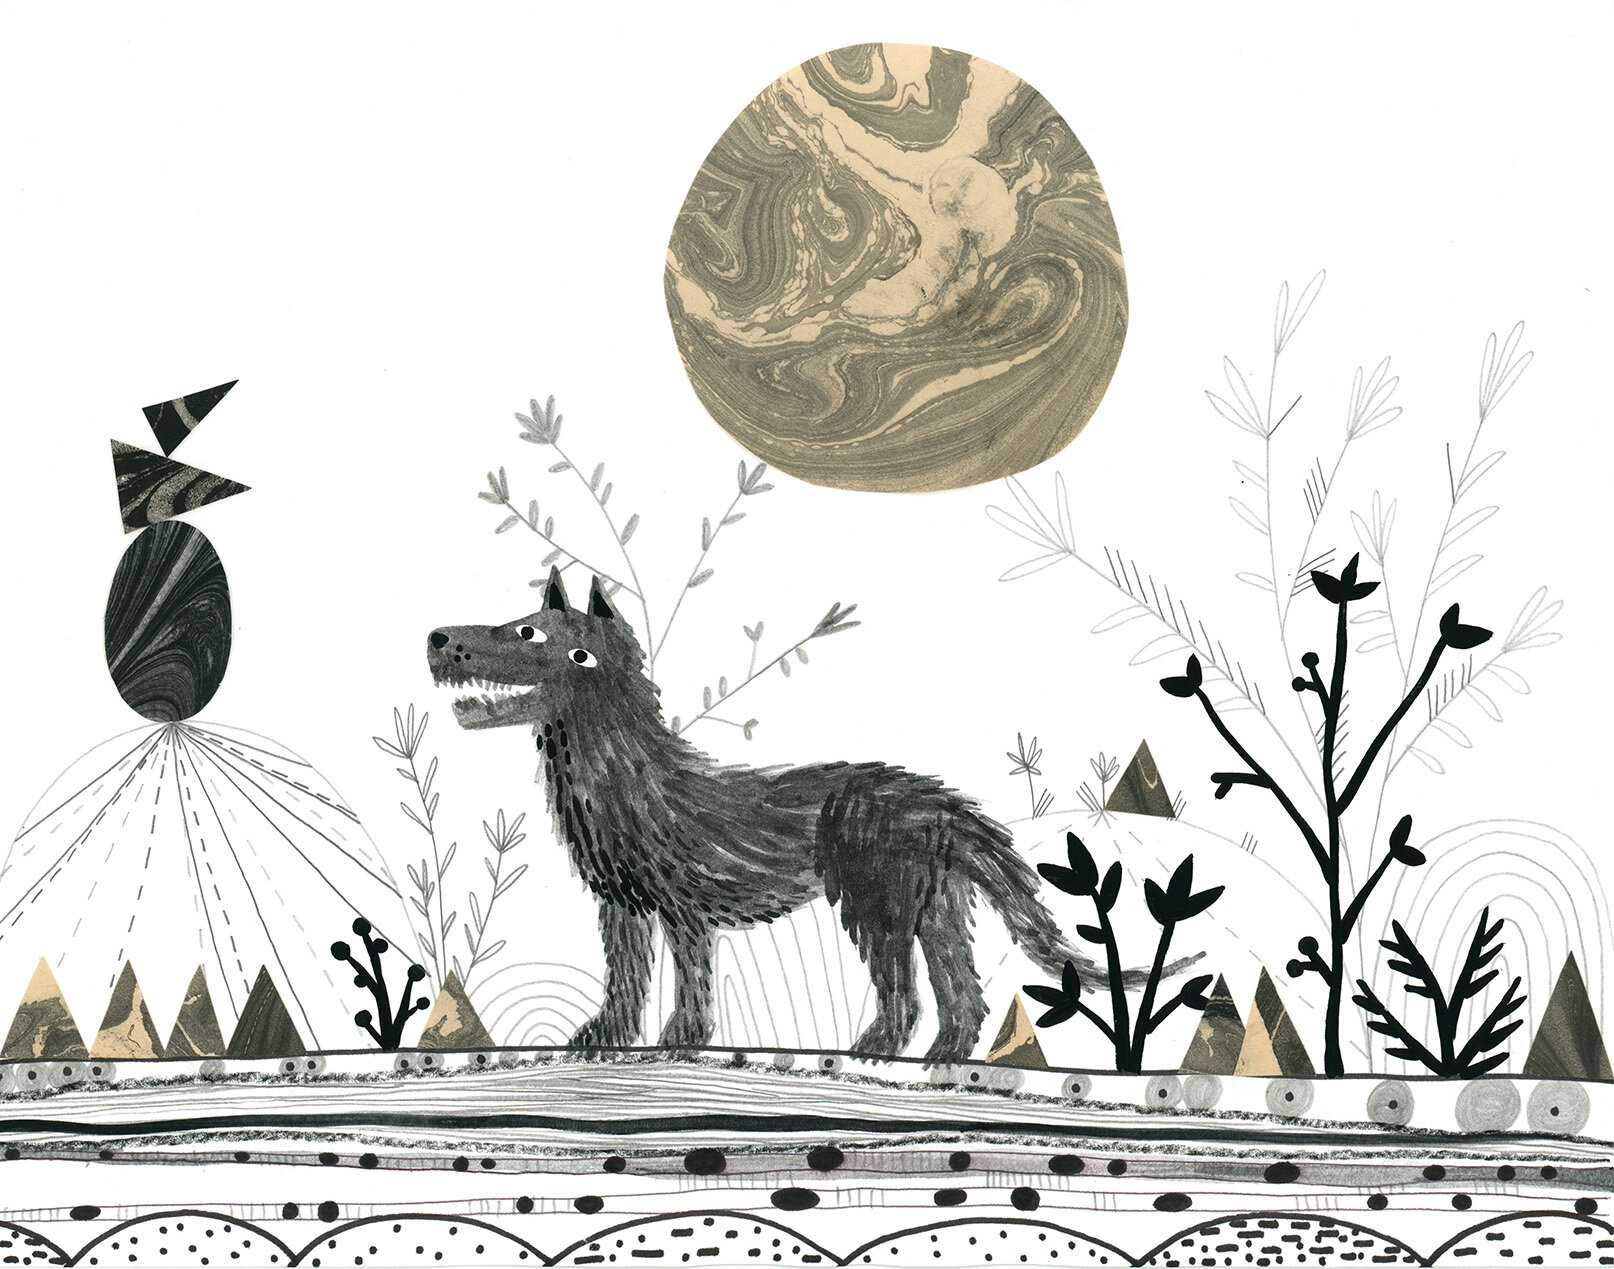 Wolf Moon  - 2019, hand marbled paper, graphite, china marker on paper, 8.5 x 11 inches - private collection